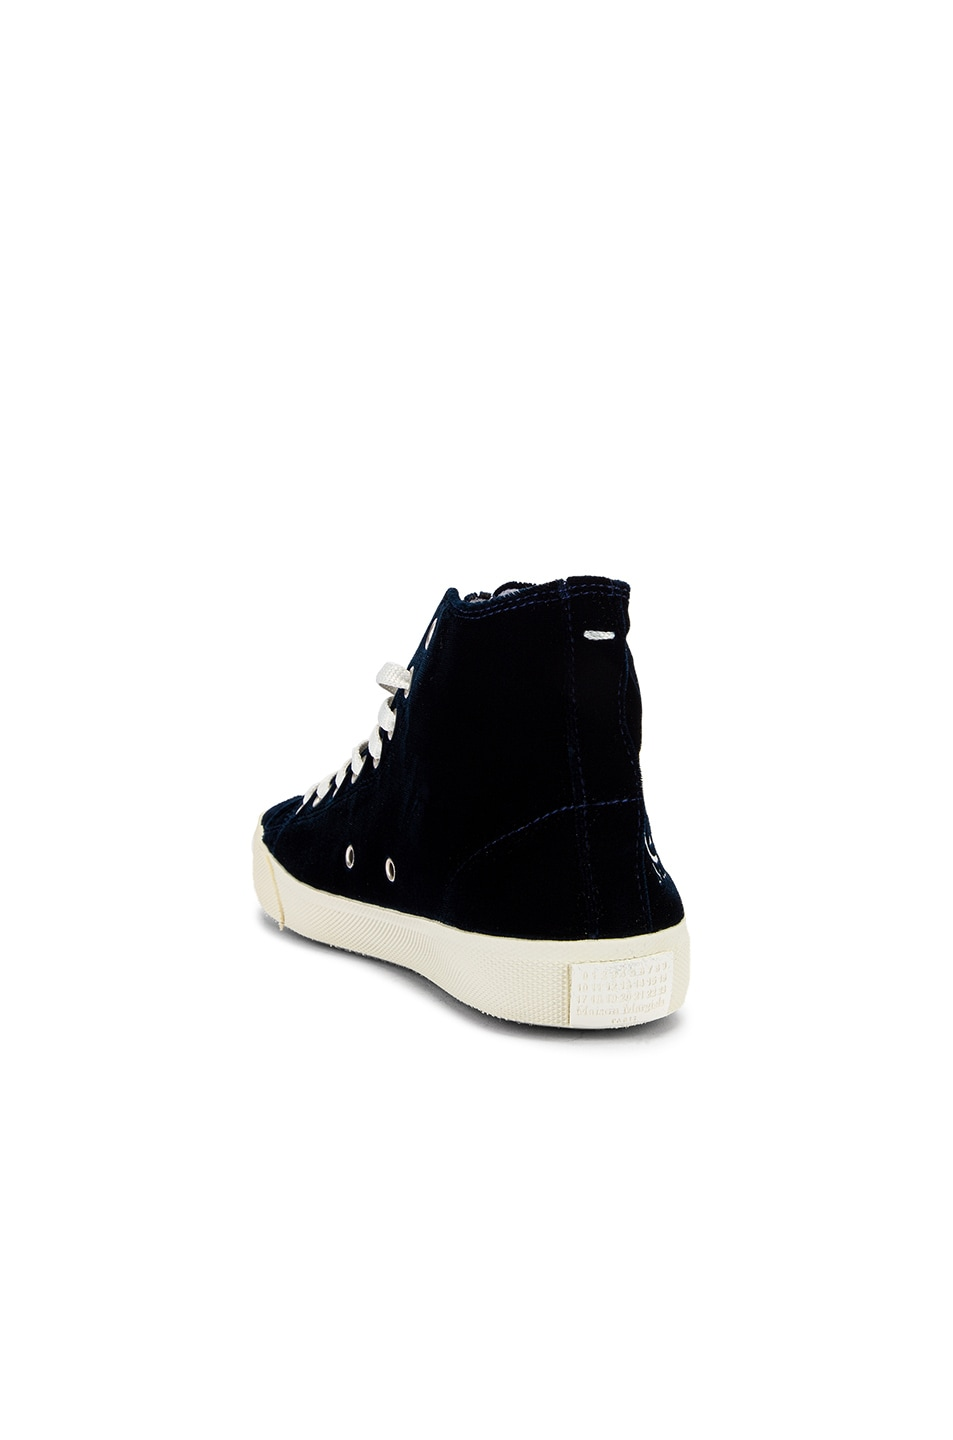 Image 4 of Maison Margiela Toe High Top Sneakers in Navy Blue